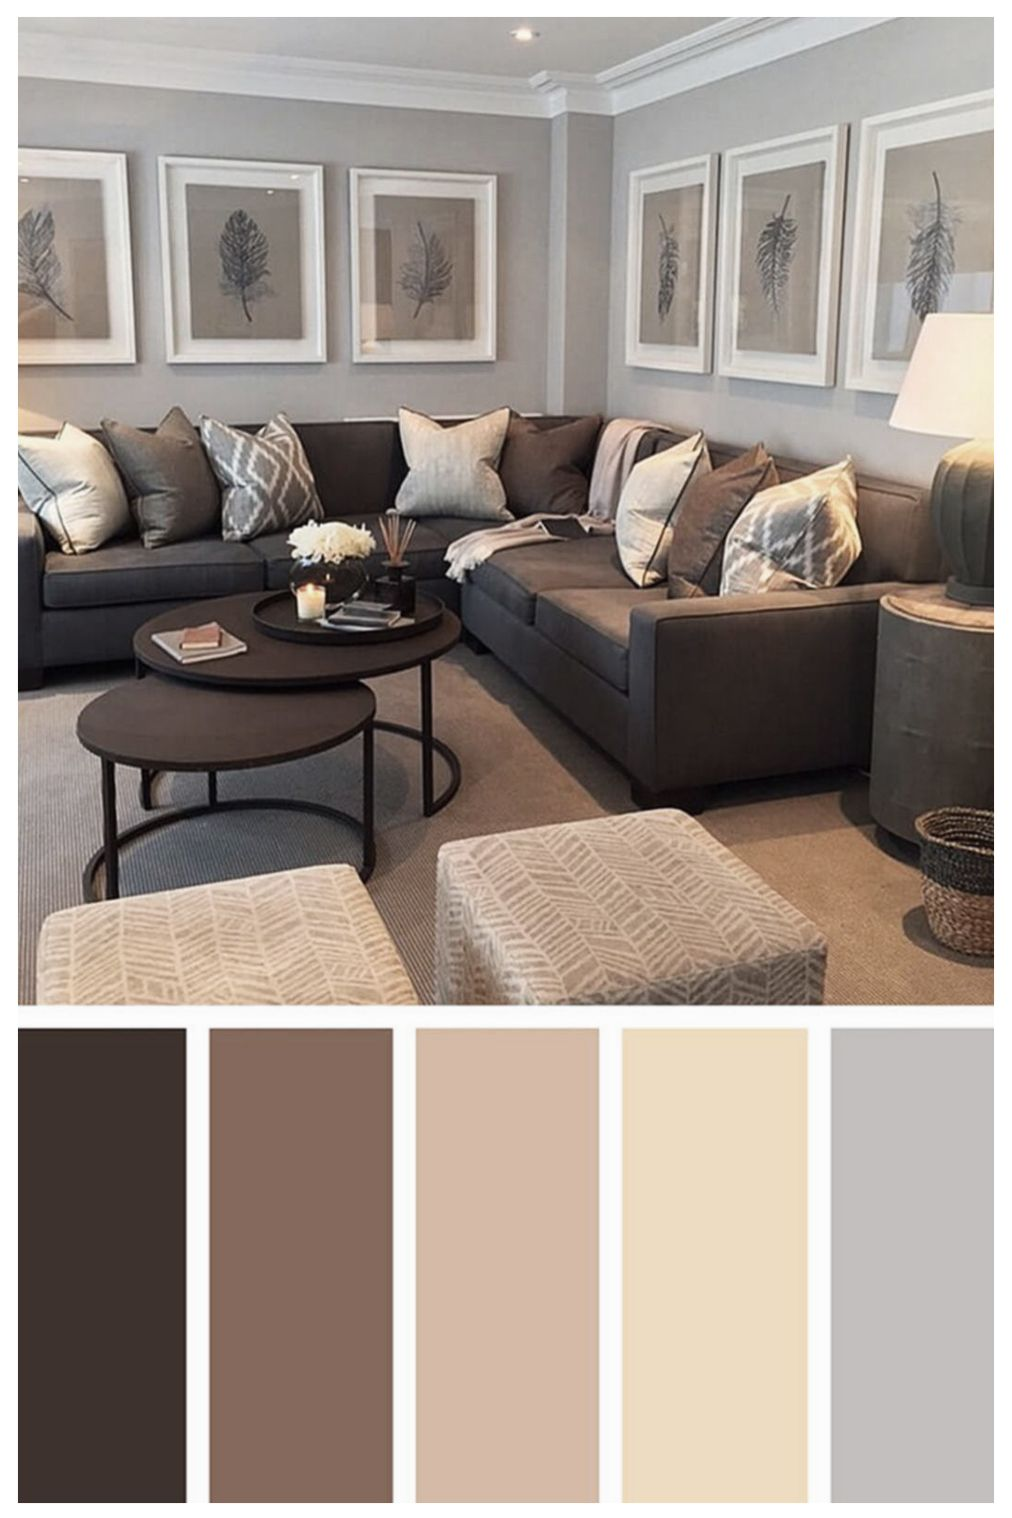 20 Astonishing Living Room Remodel Ideas 2020 L Tips Trends In 2020 Living Room Decor Brown Couch Brown Living Room Decor Living Room Color Schemes